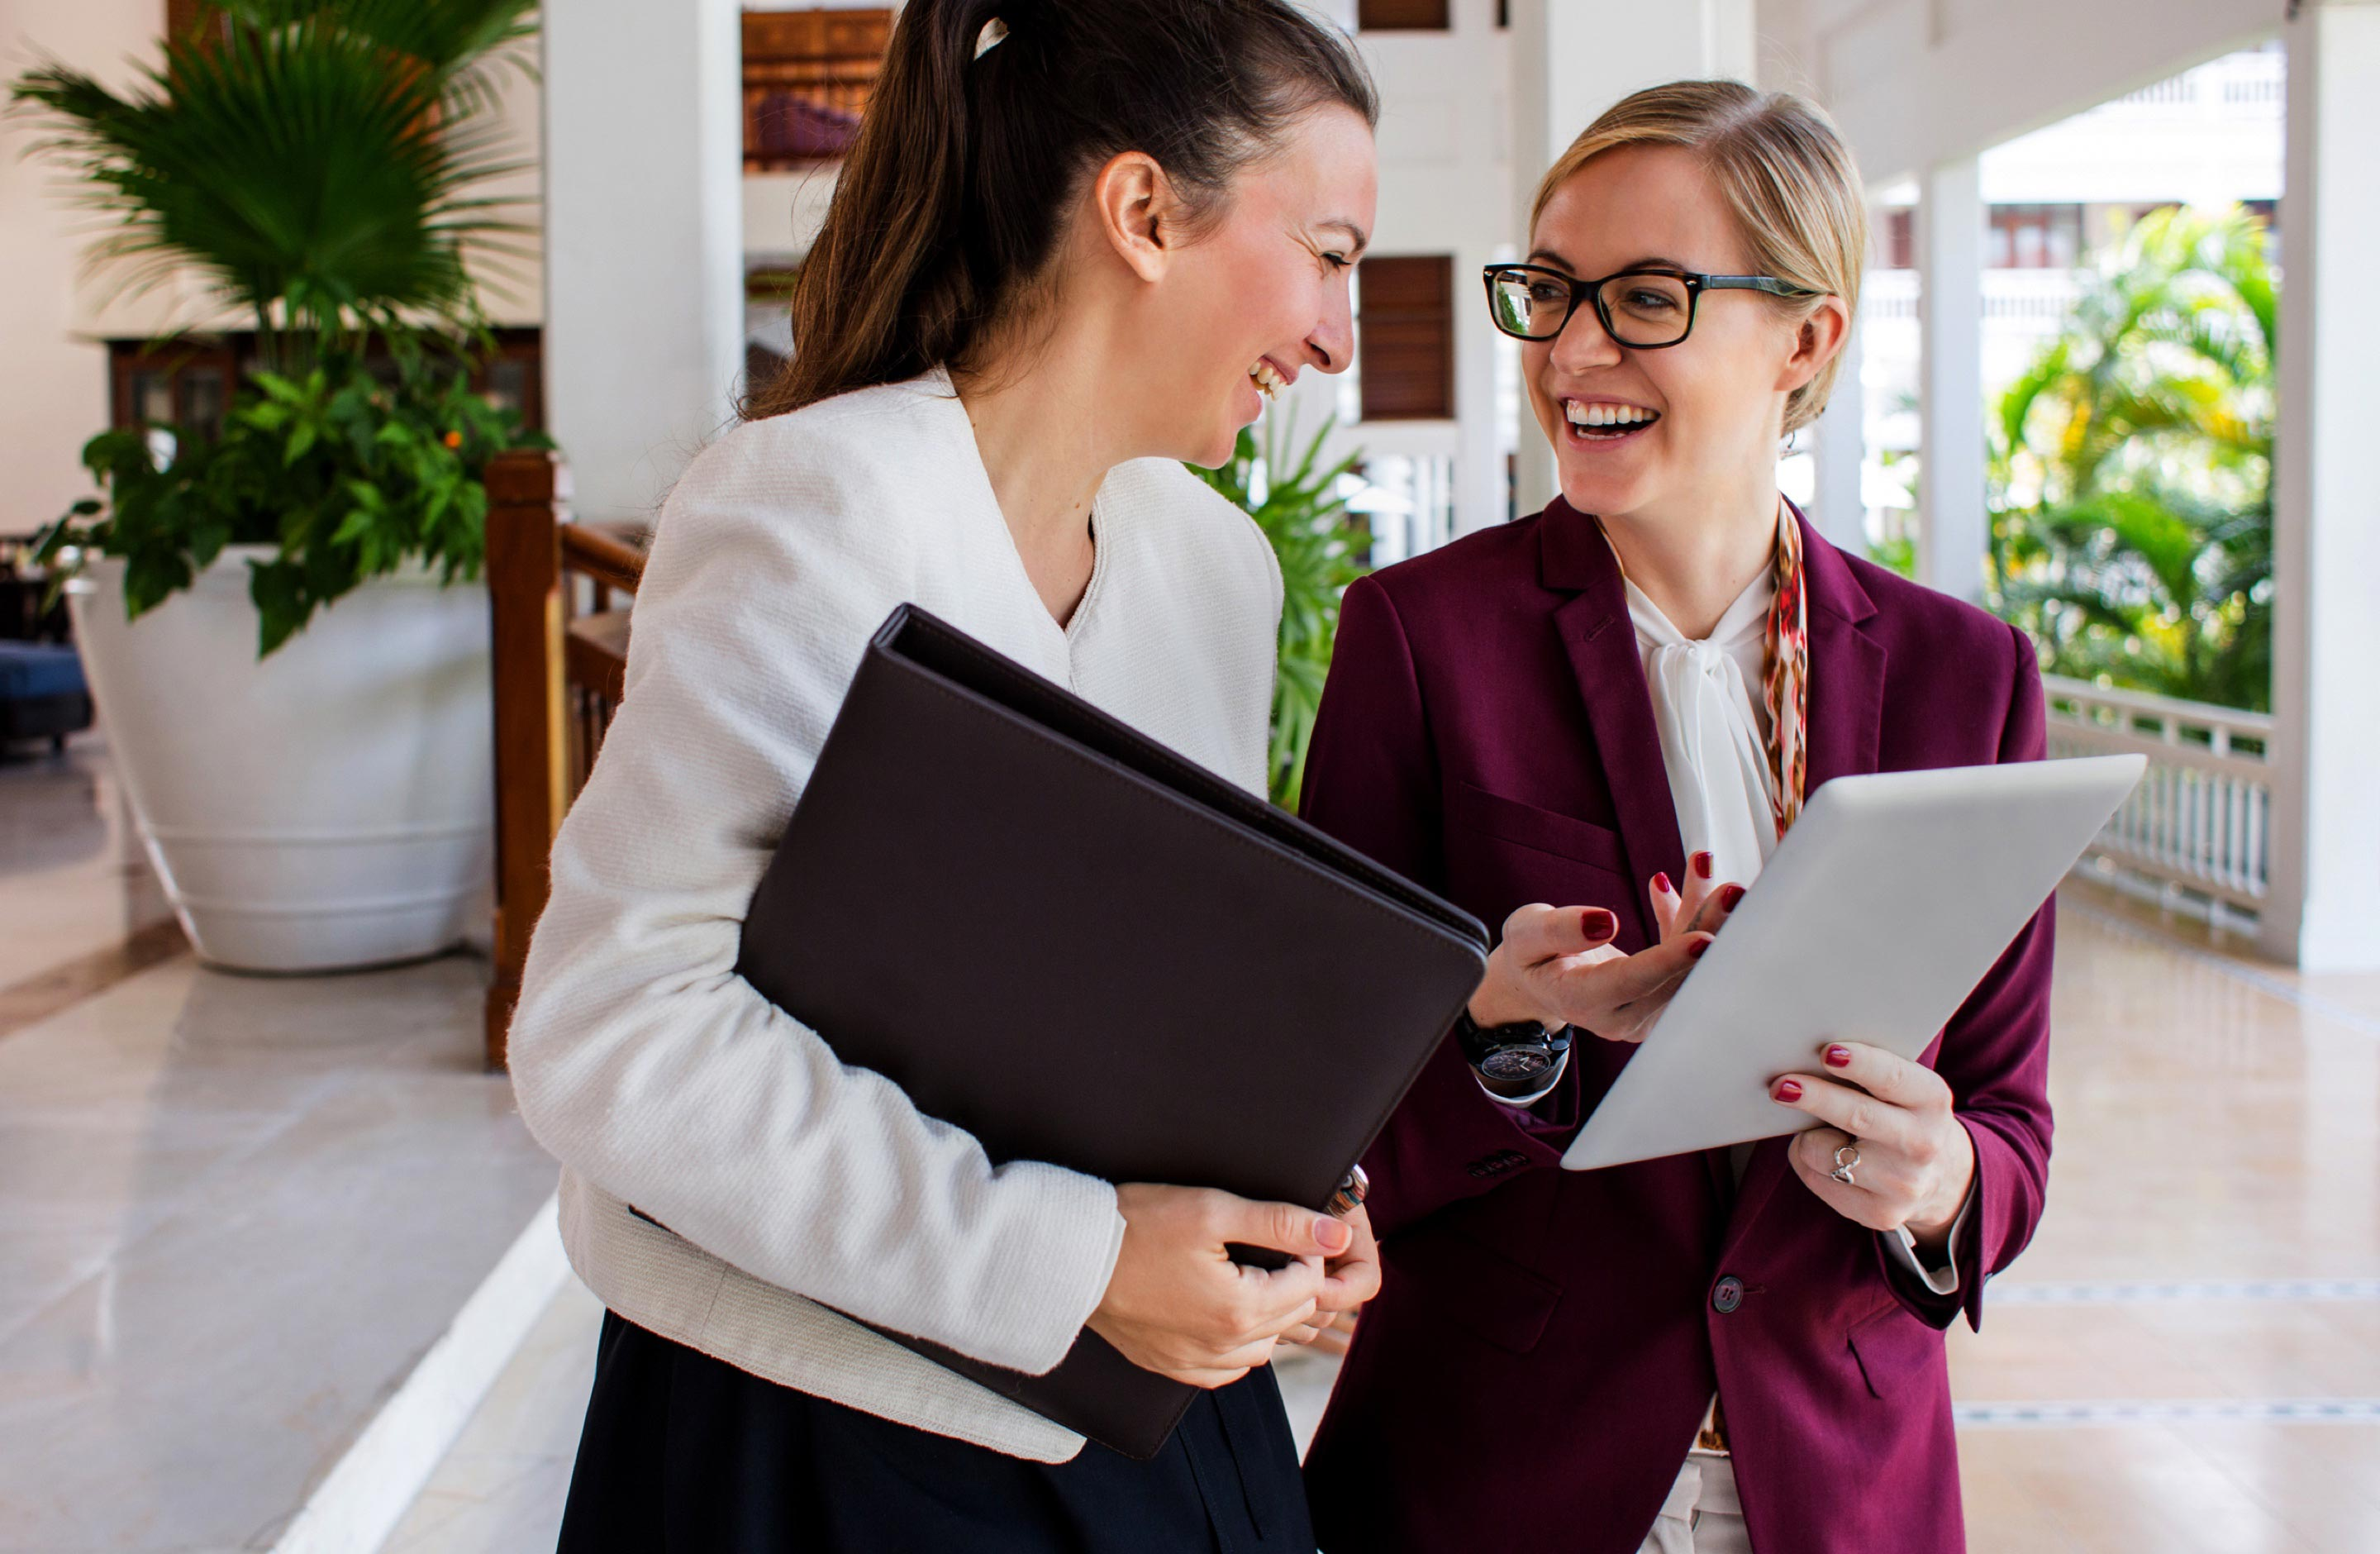 Two business women smiling at each other